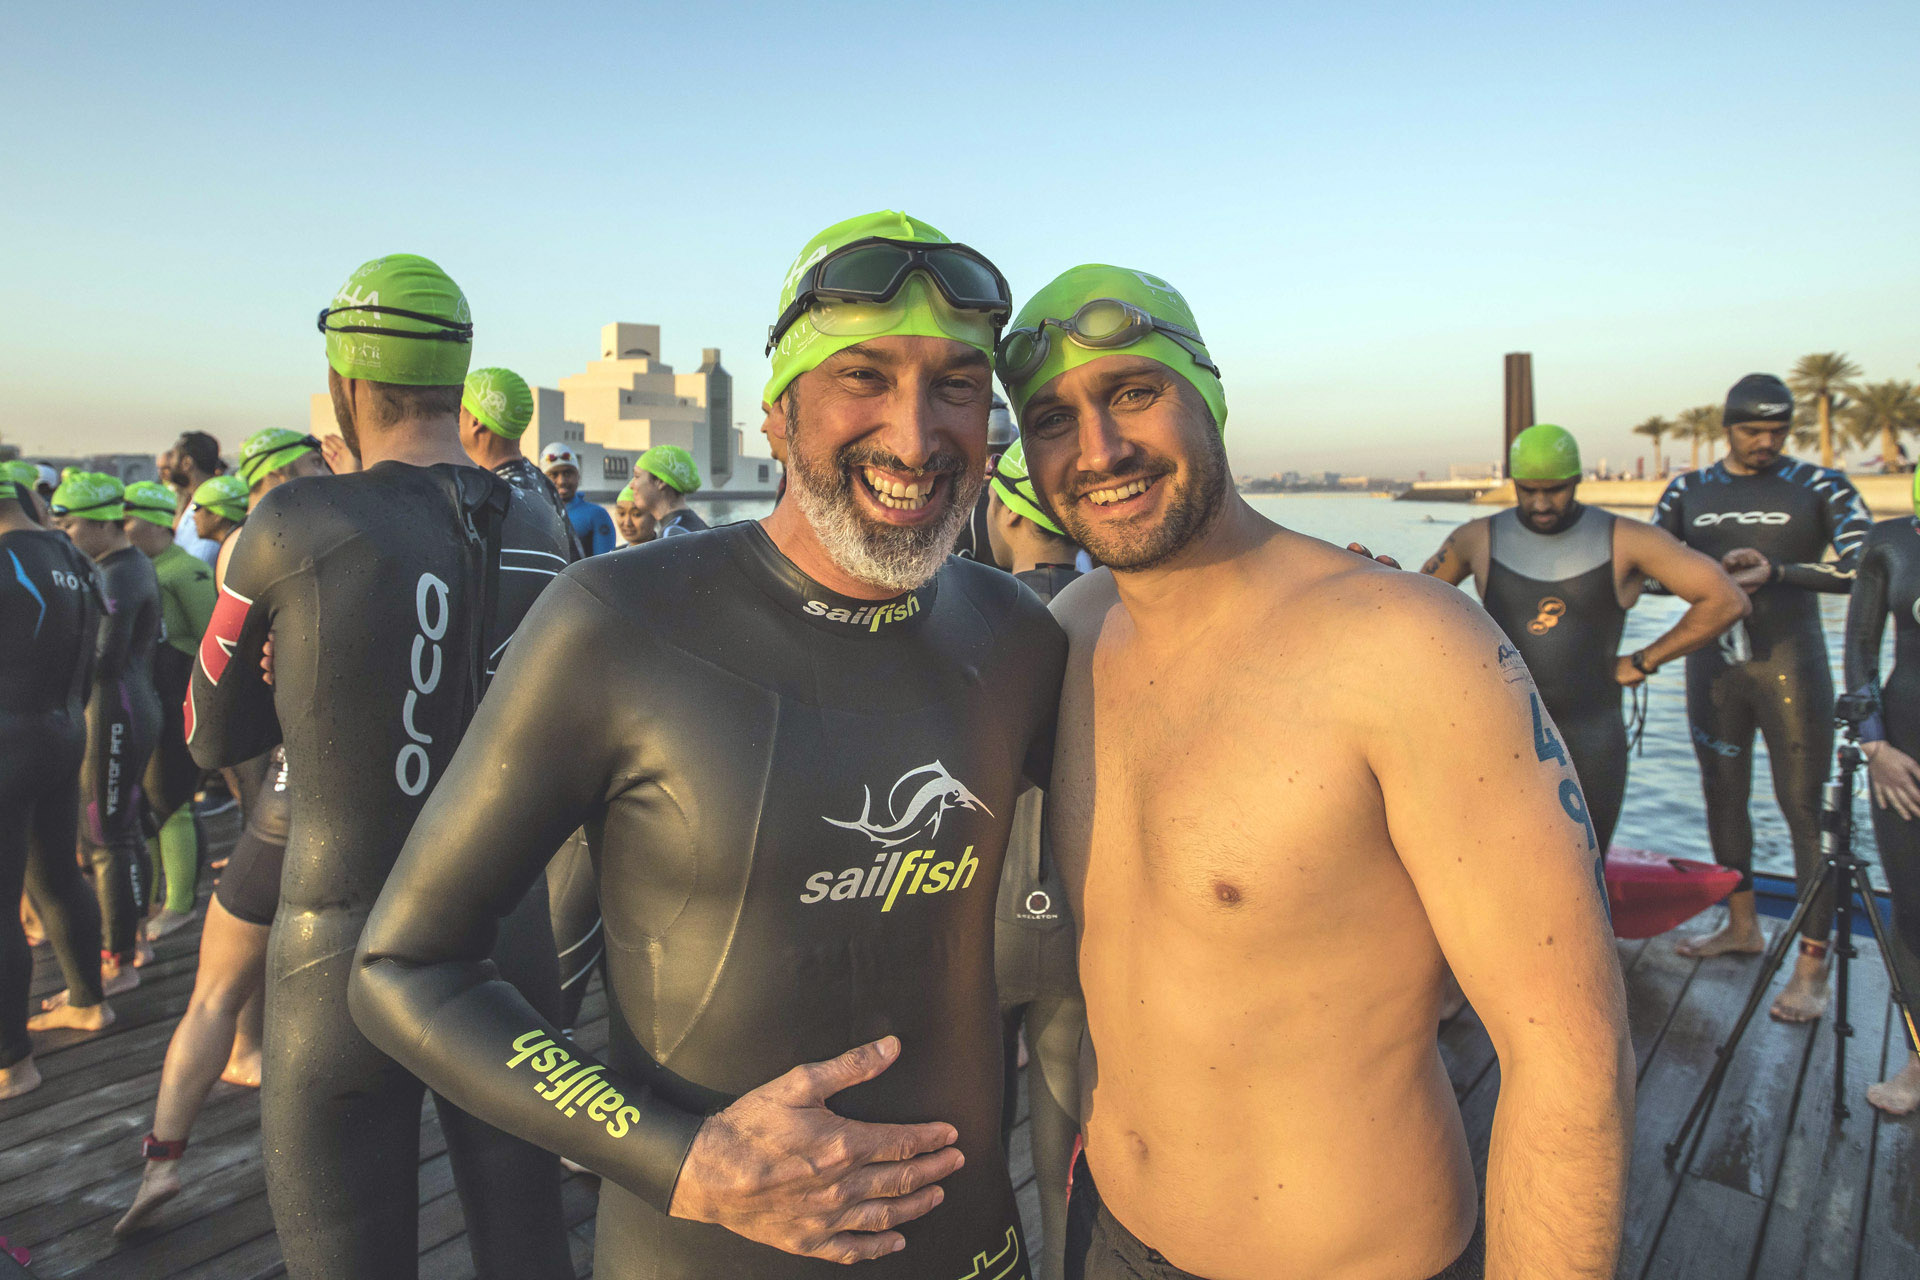 Doha Triathlon is wetsuit optional